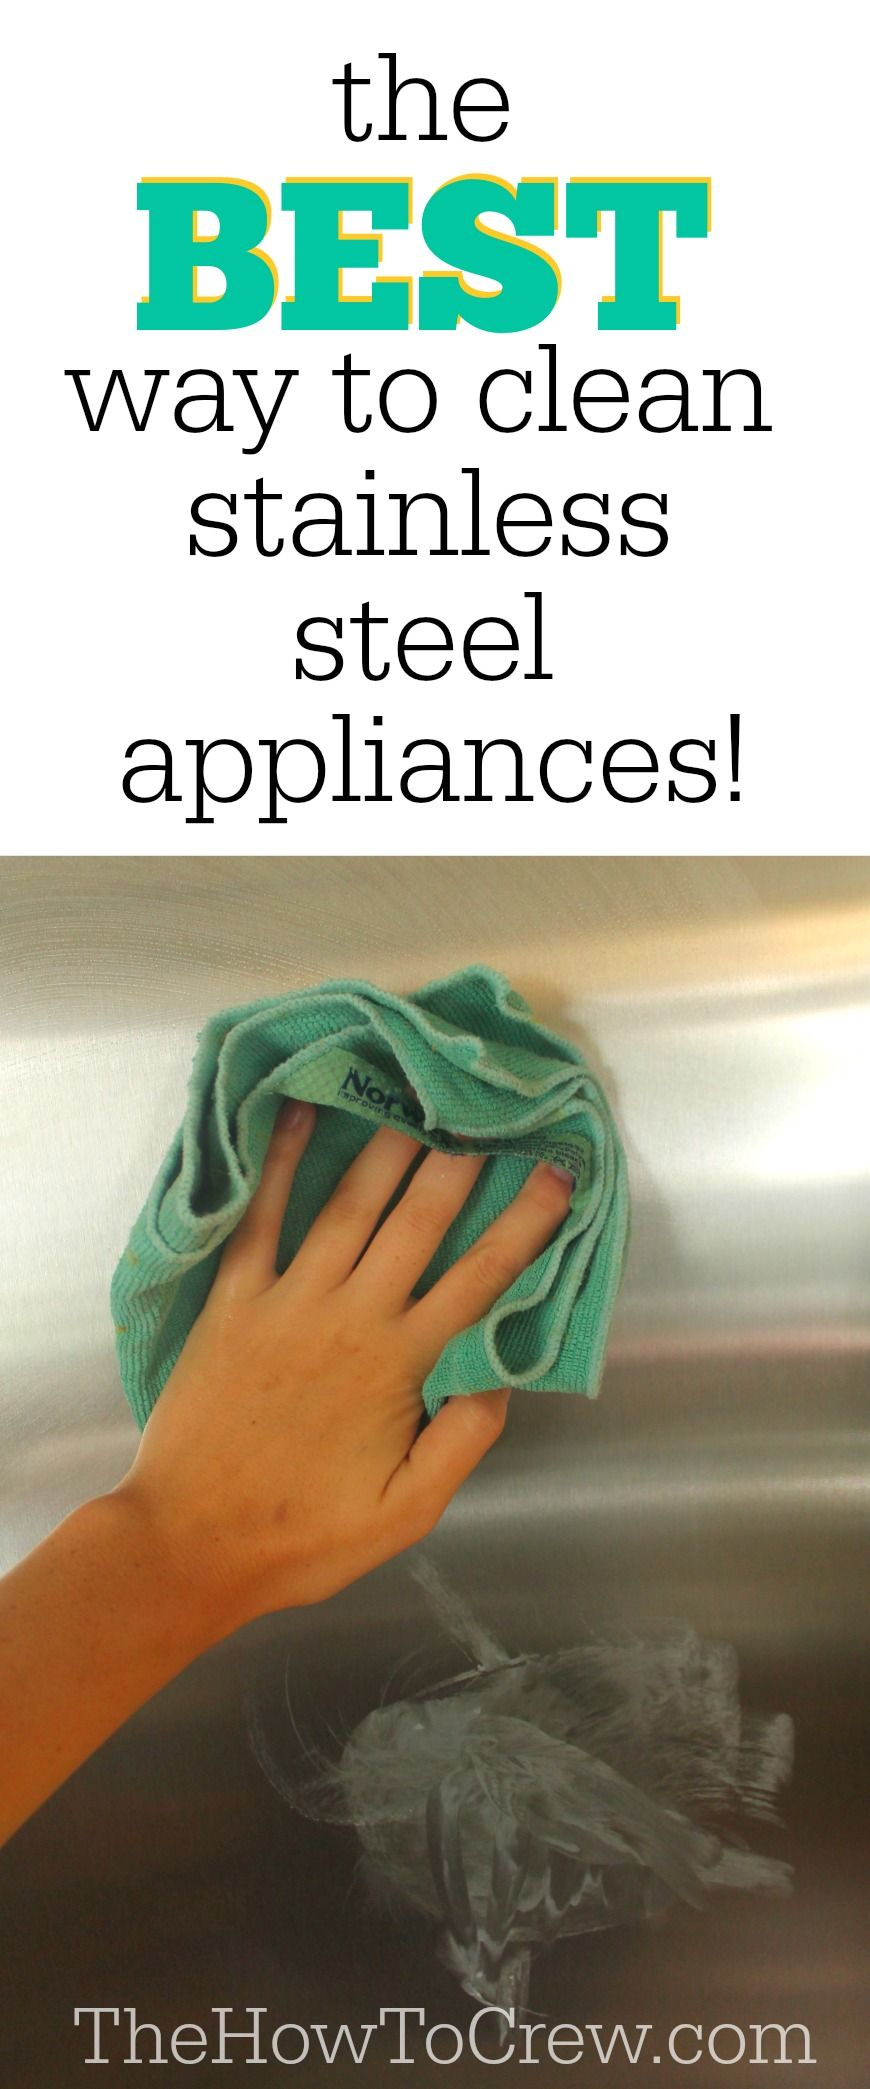 The Best Way To Clean Stainless Steel Appliances The Best Way To Clean Stainless Steel Appliances From Thehowtocrew